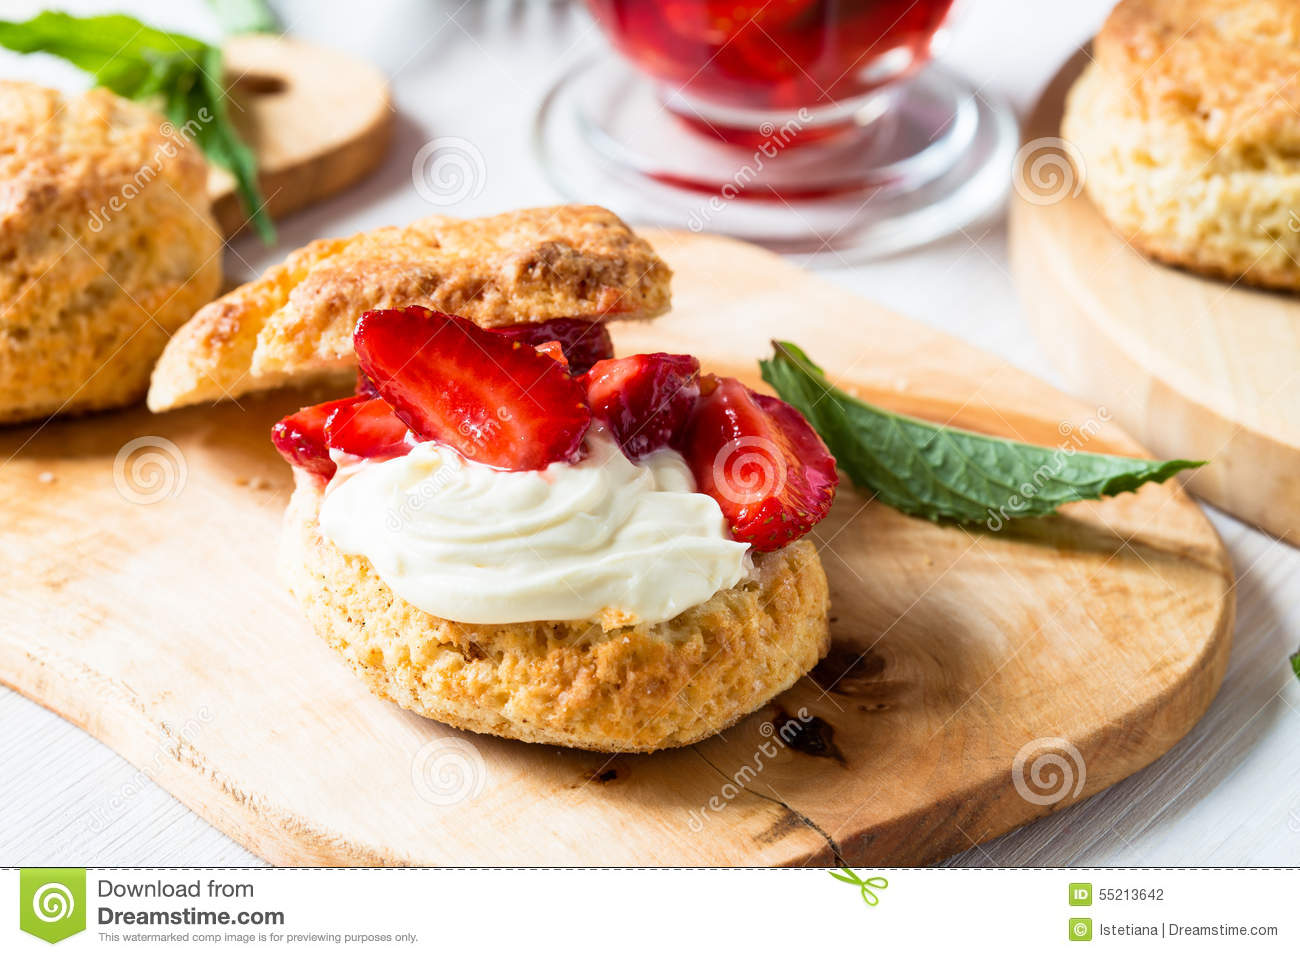 ... strawberry shortcake with vanilla whipped cream and berry compote